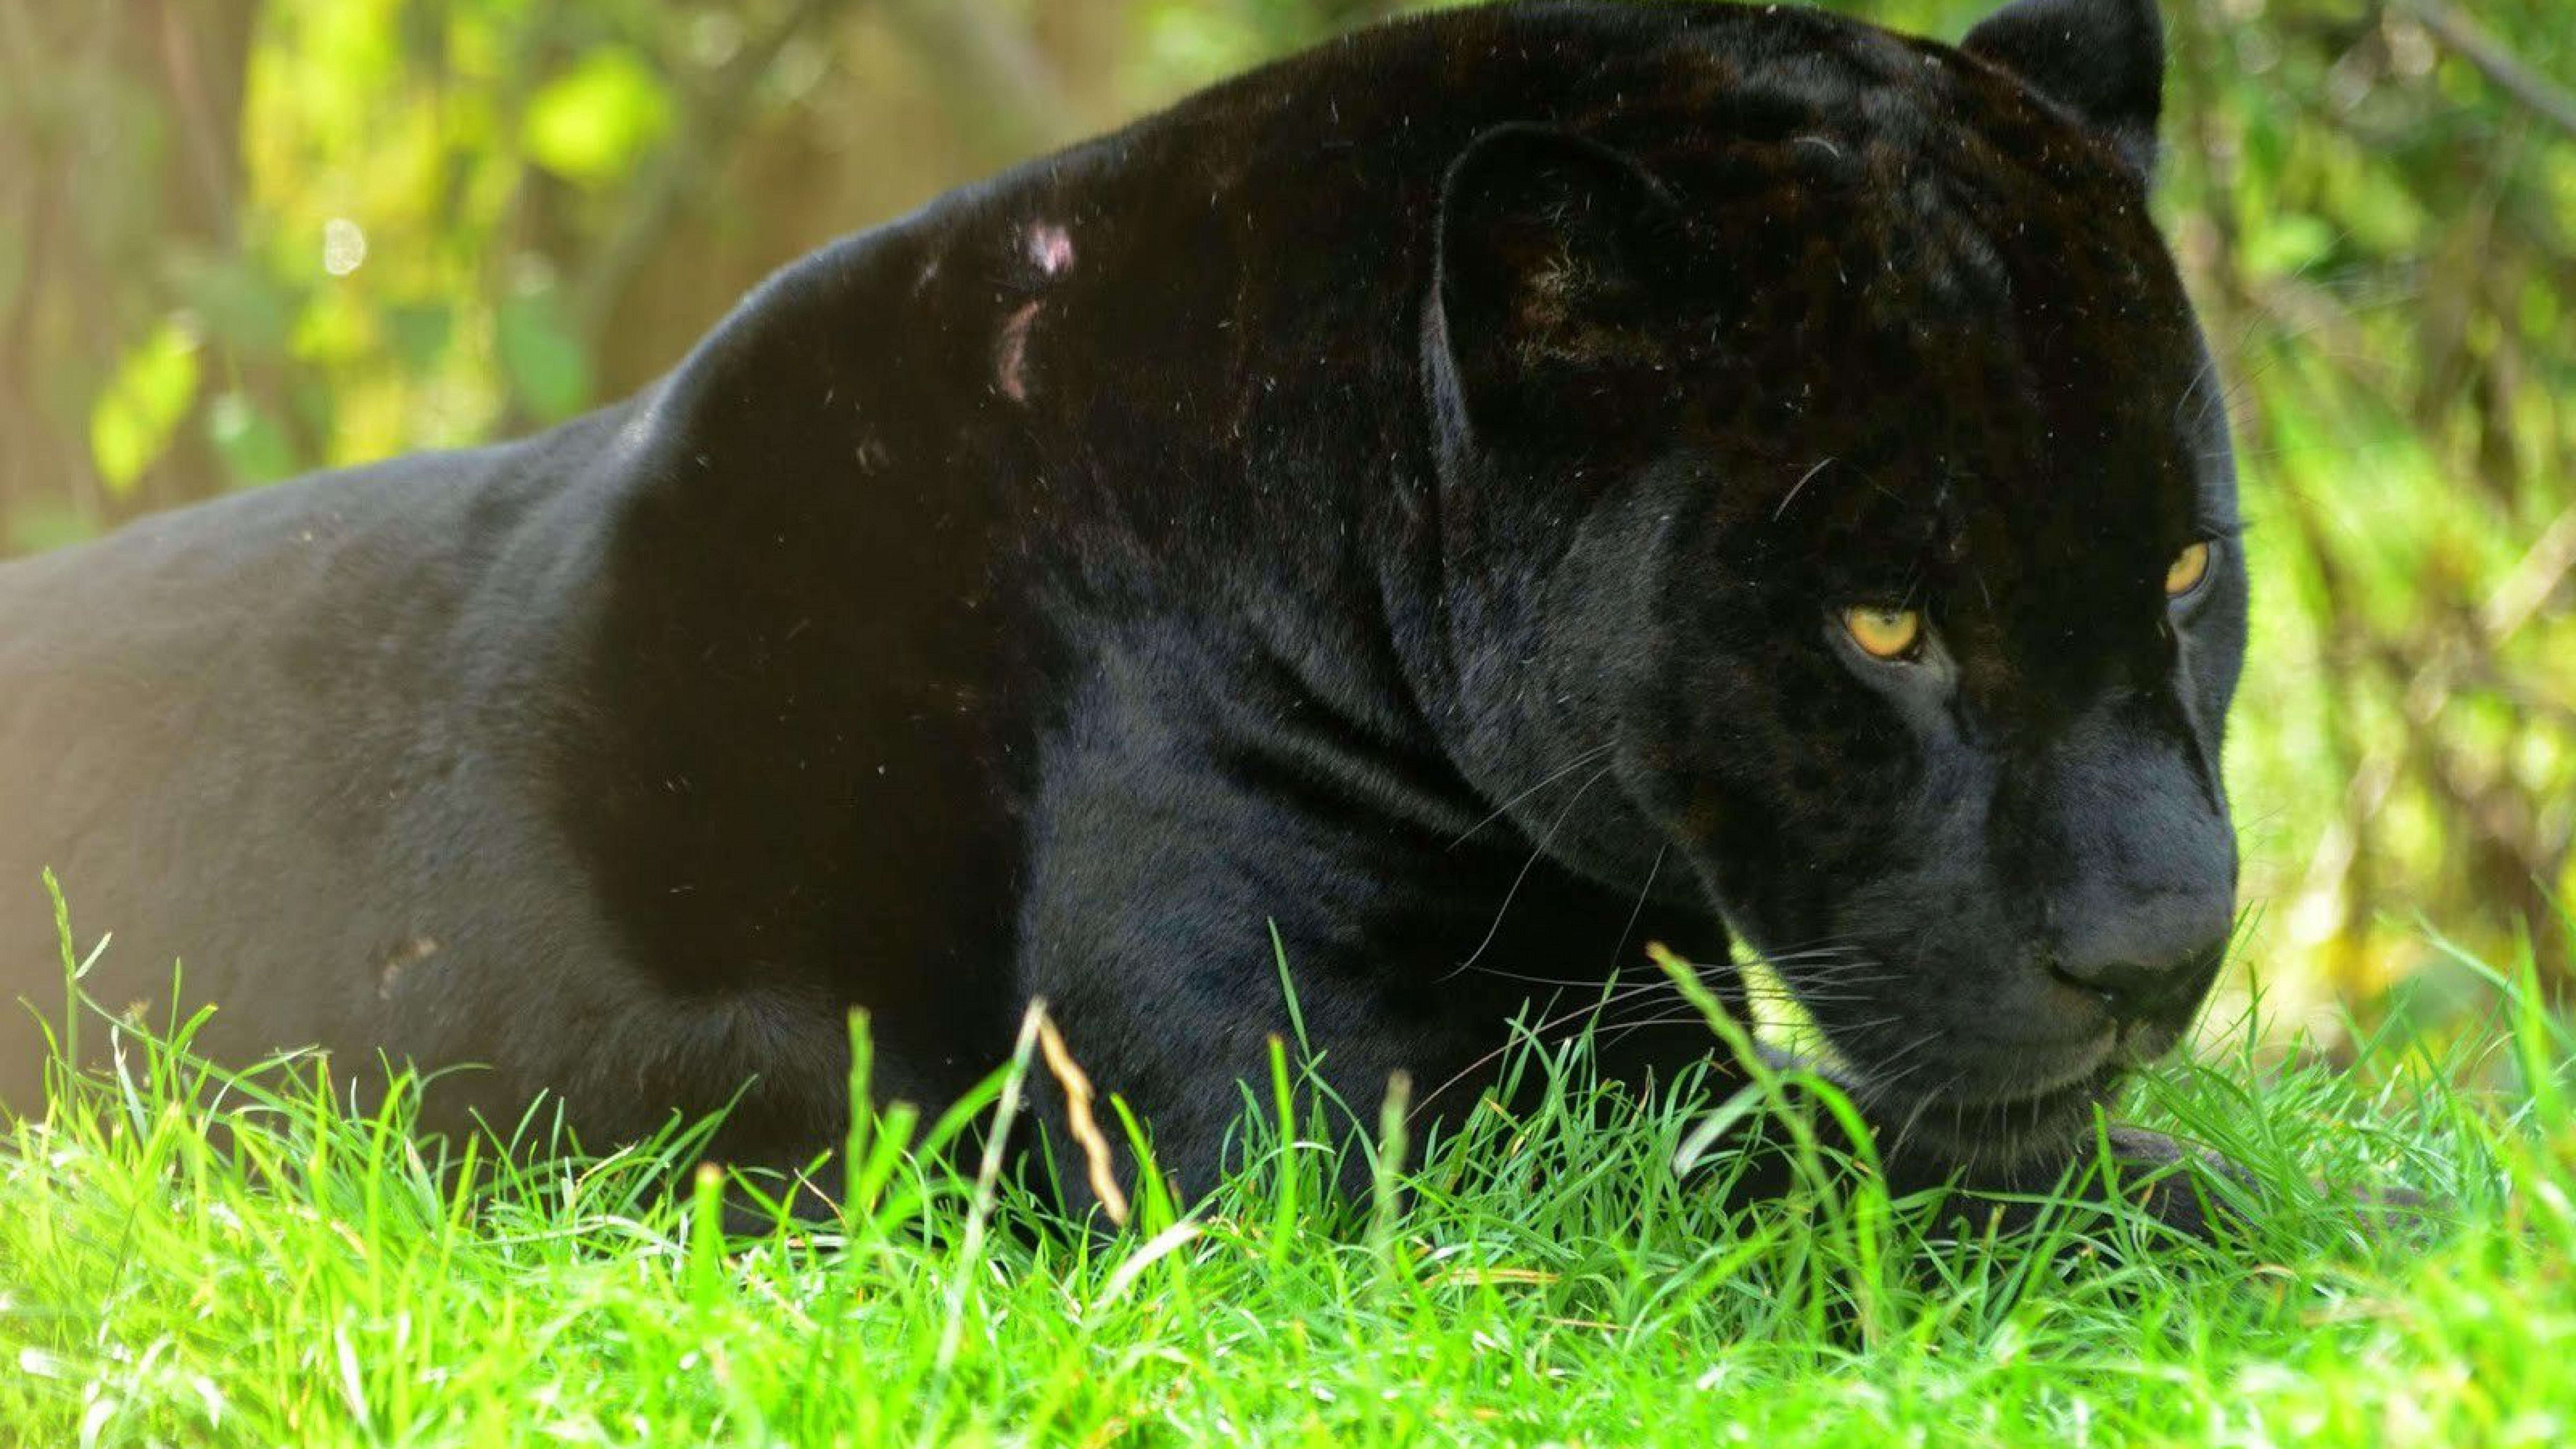 Ultra Hd Panther Animal Wallpapers 4k